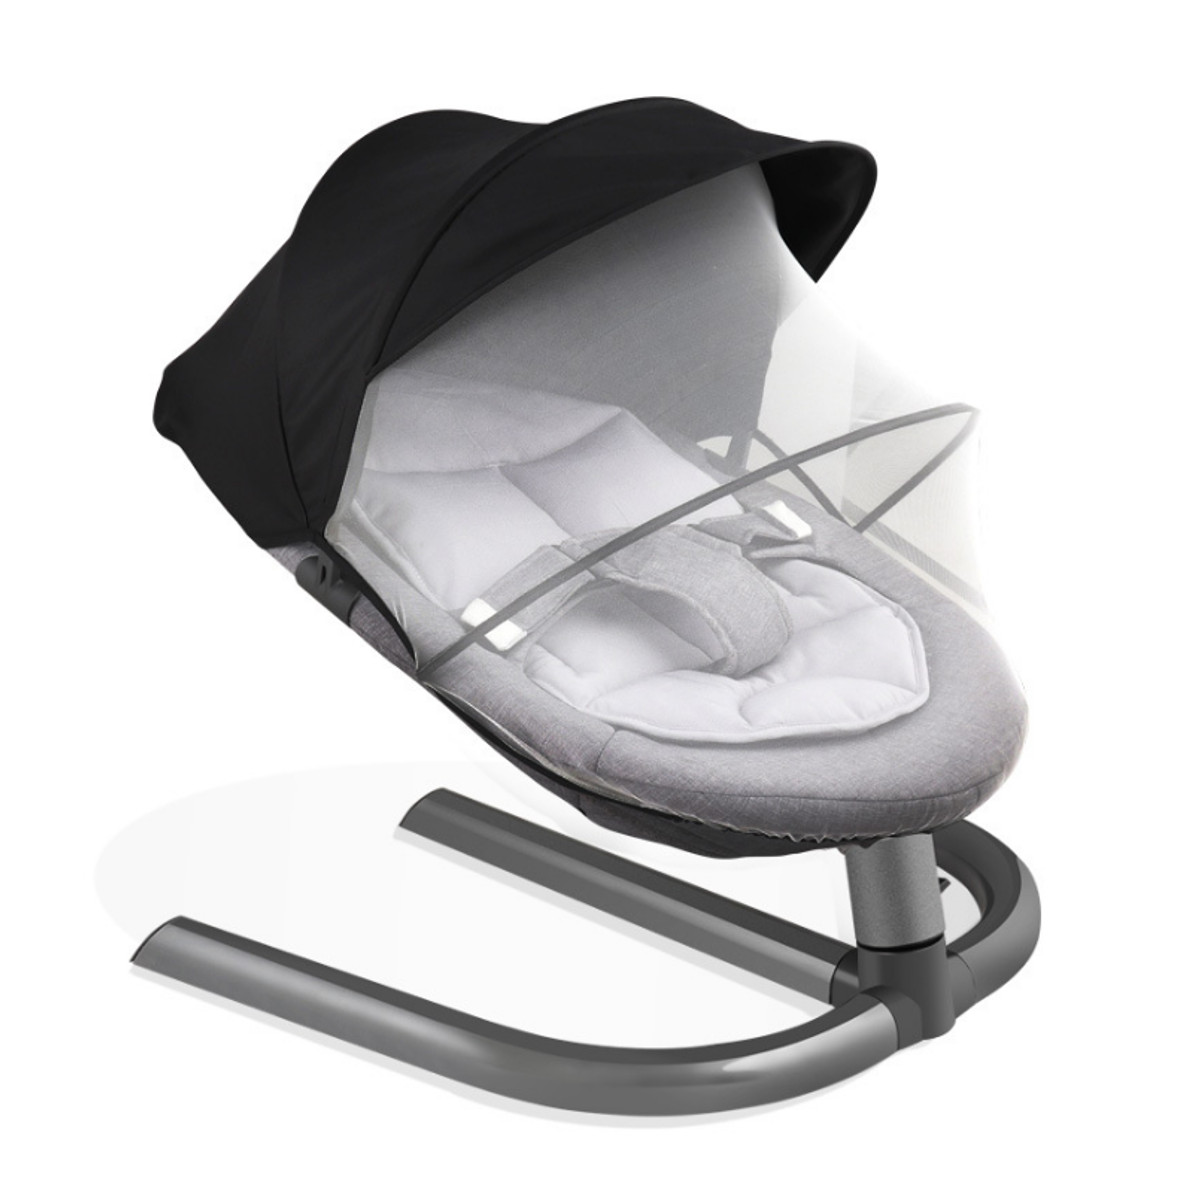 H668eae3c2bfc41109dc07159204abdf2t Newborn Electric Swing Multifunctional  Baby Bouncer Cradle Rocking Chair With Mosquito Net Cradle Crib Sleeping Safety Basket